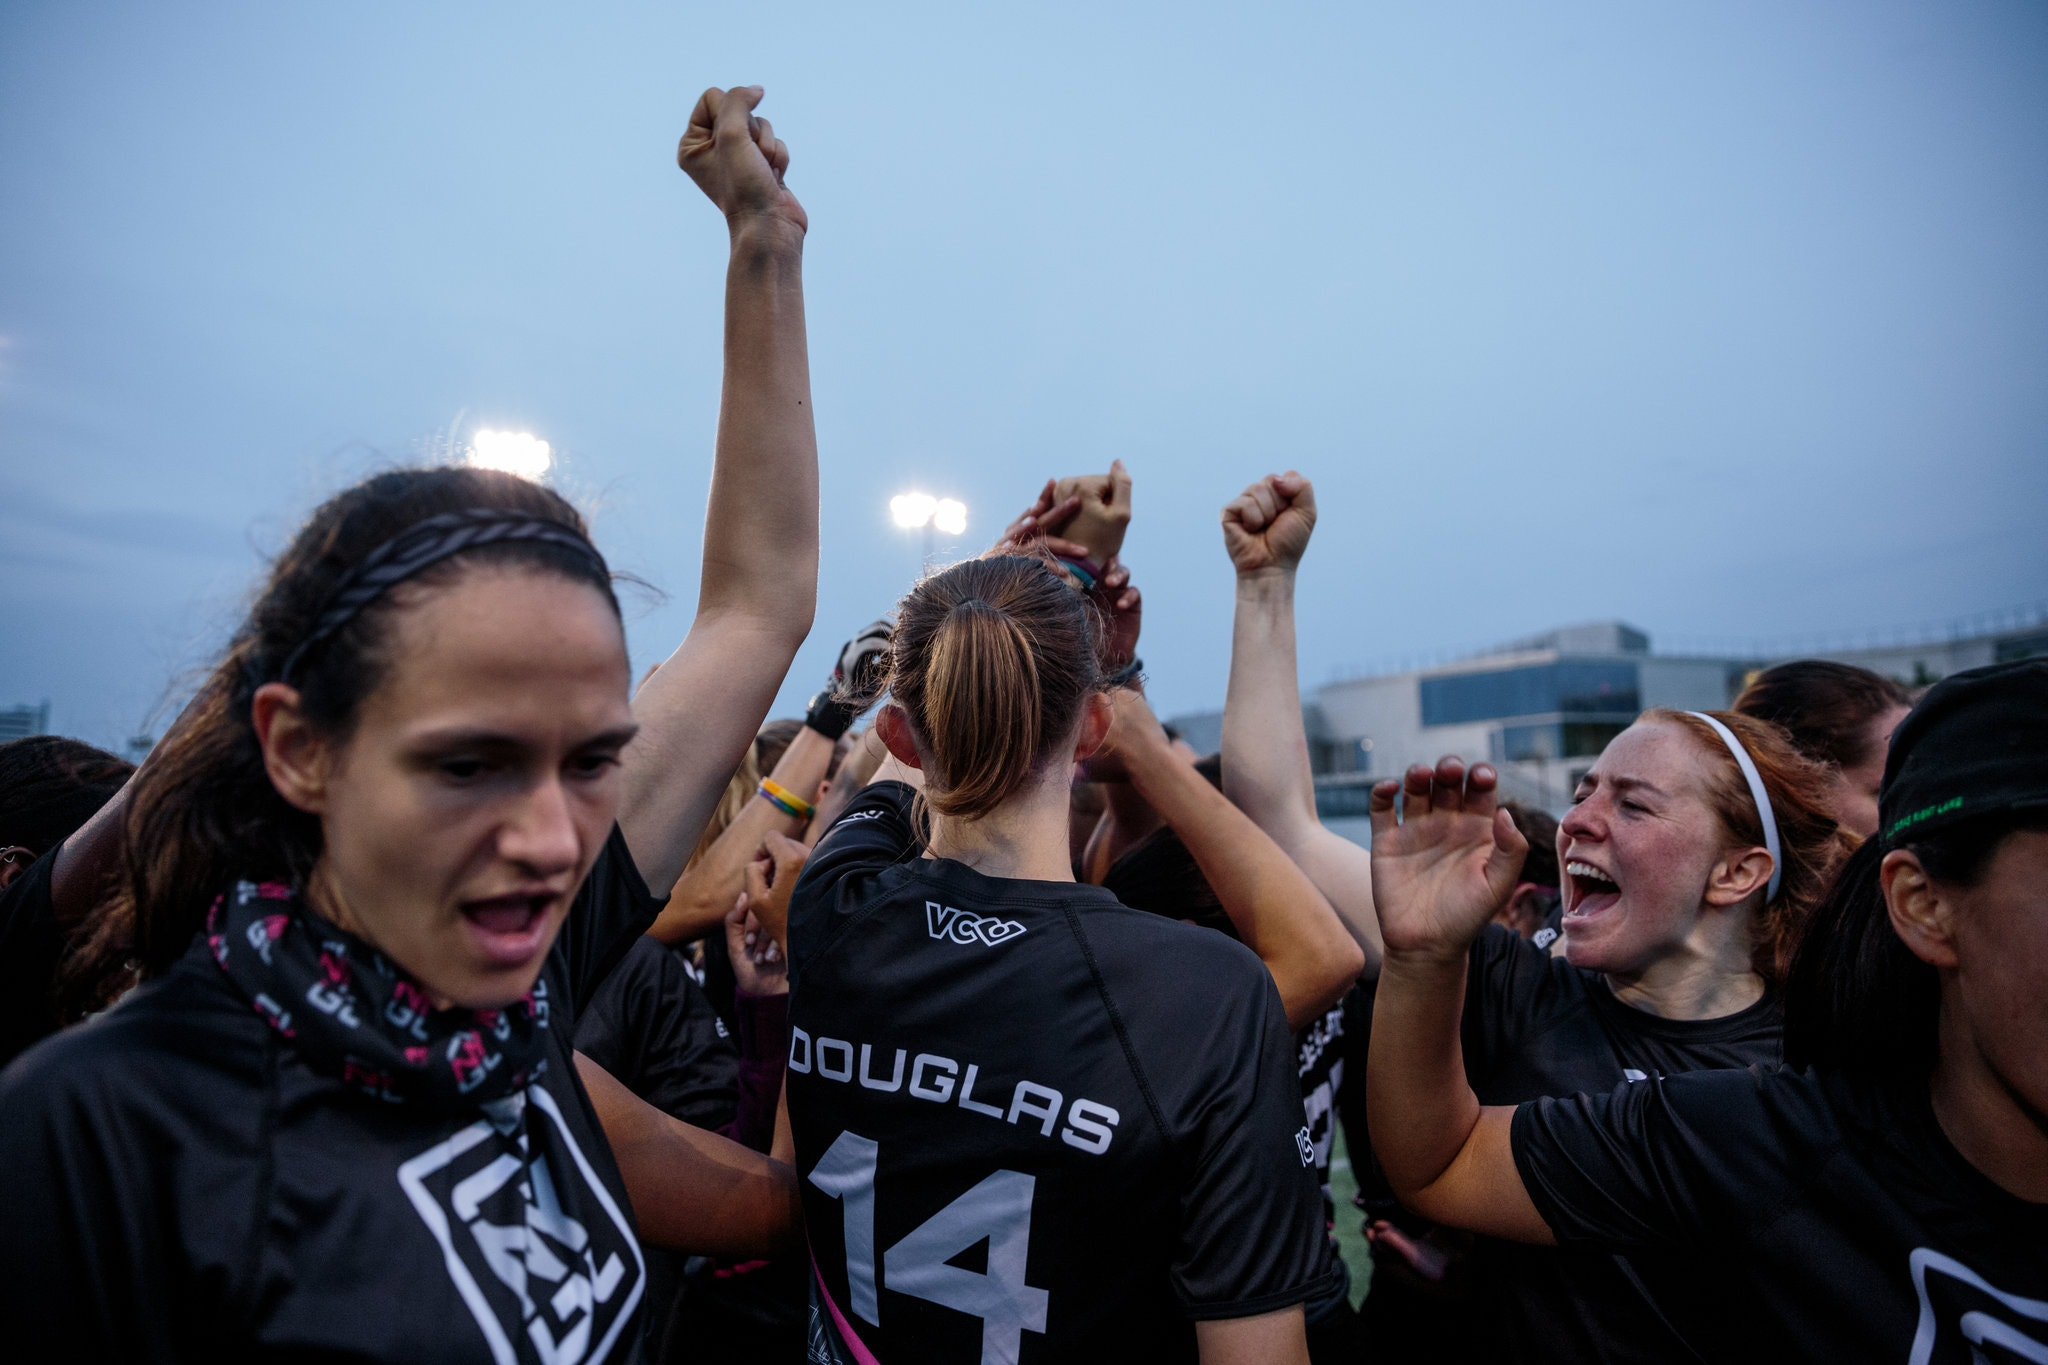 Check out our NY Times feature! - Born of a Boycott, a Women's Ultimate Frisbee League Charts Its Own Path